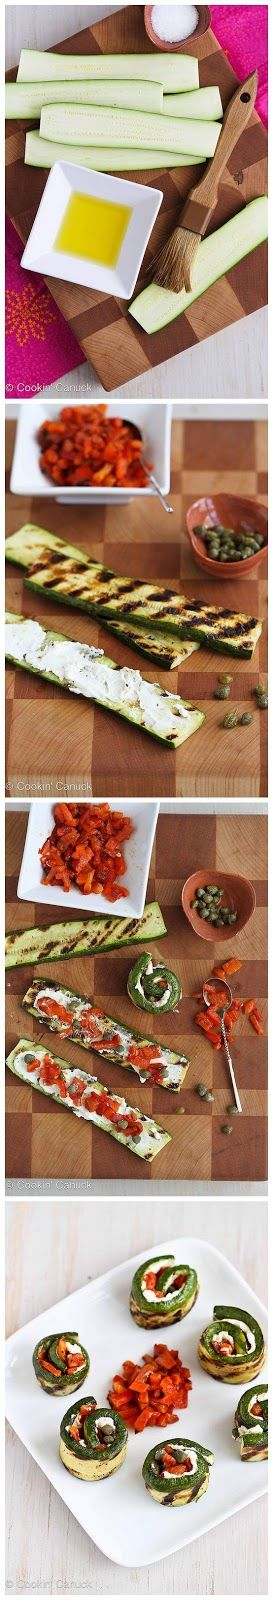 Grilled Zucchini Roll Recipe with Goat Cheese, Roasted Peppers & Capers